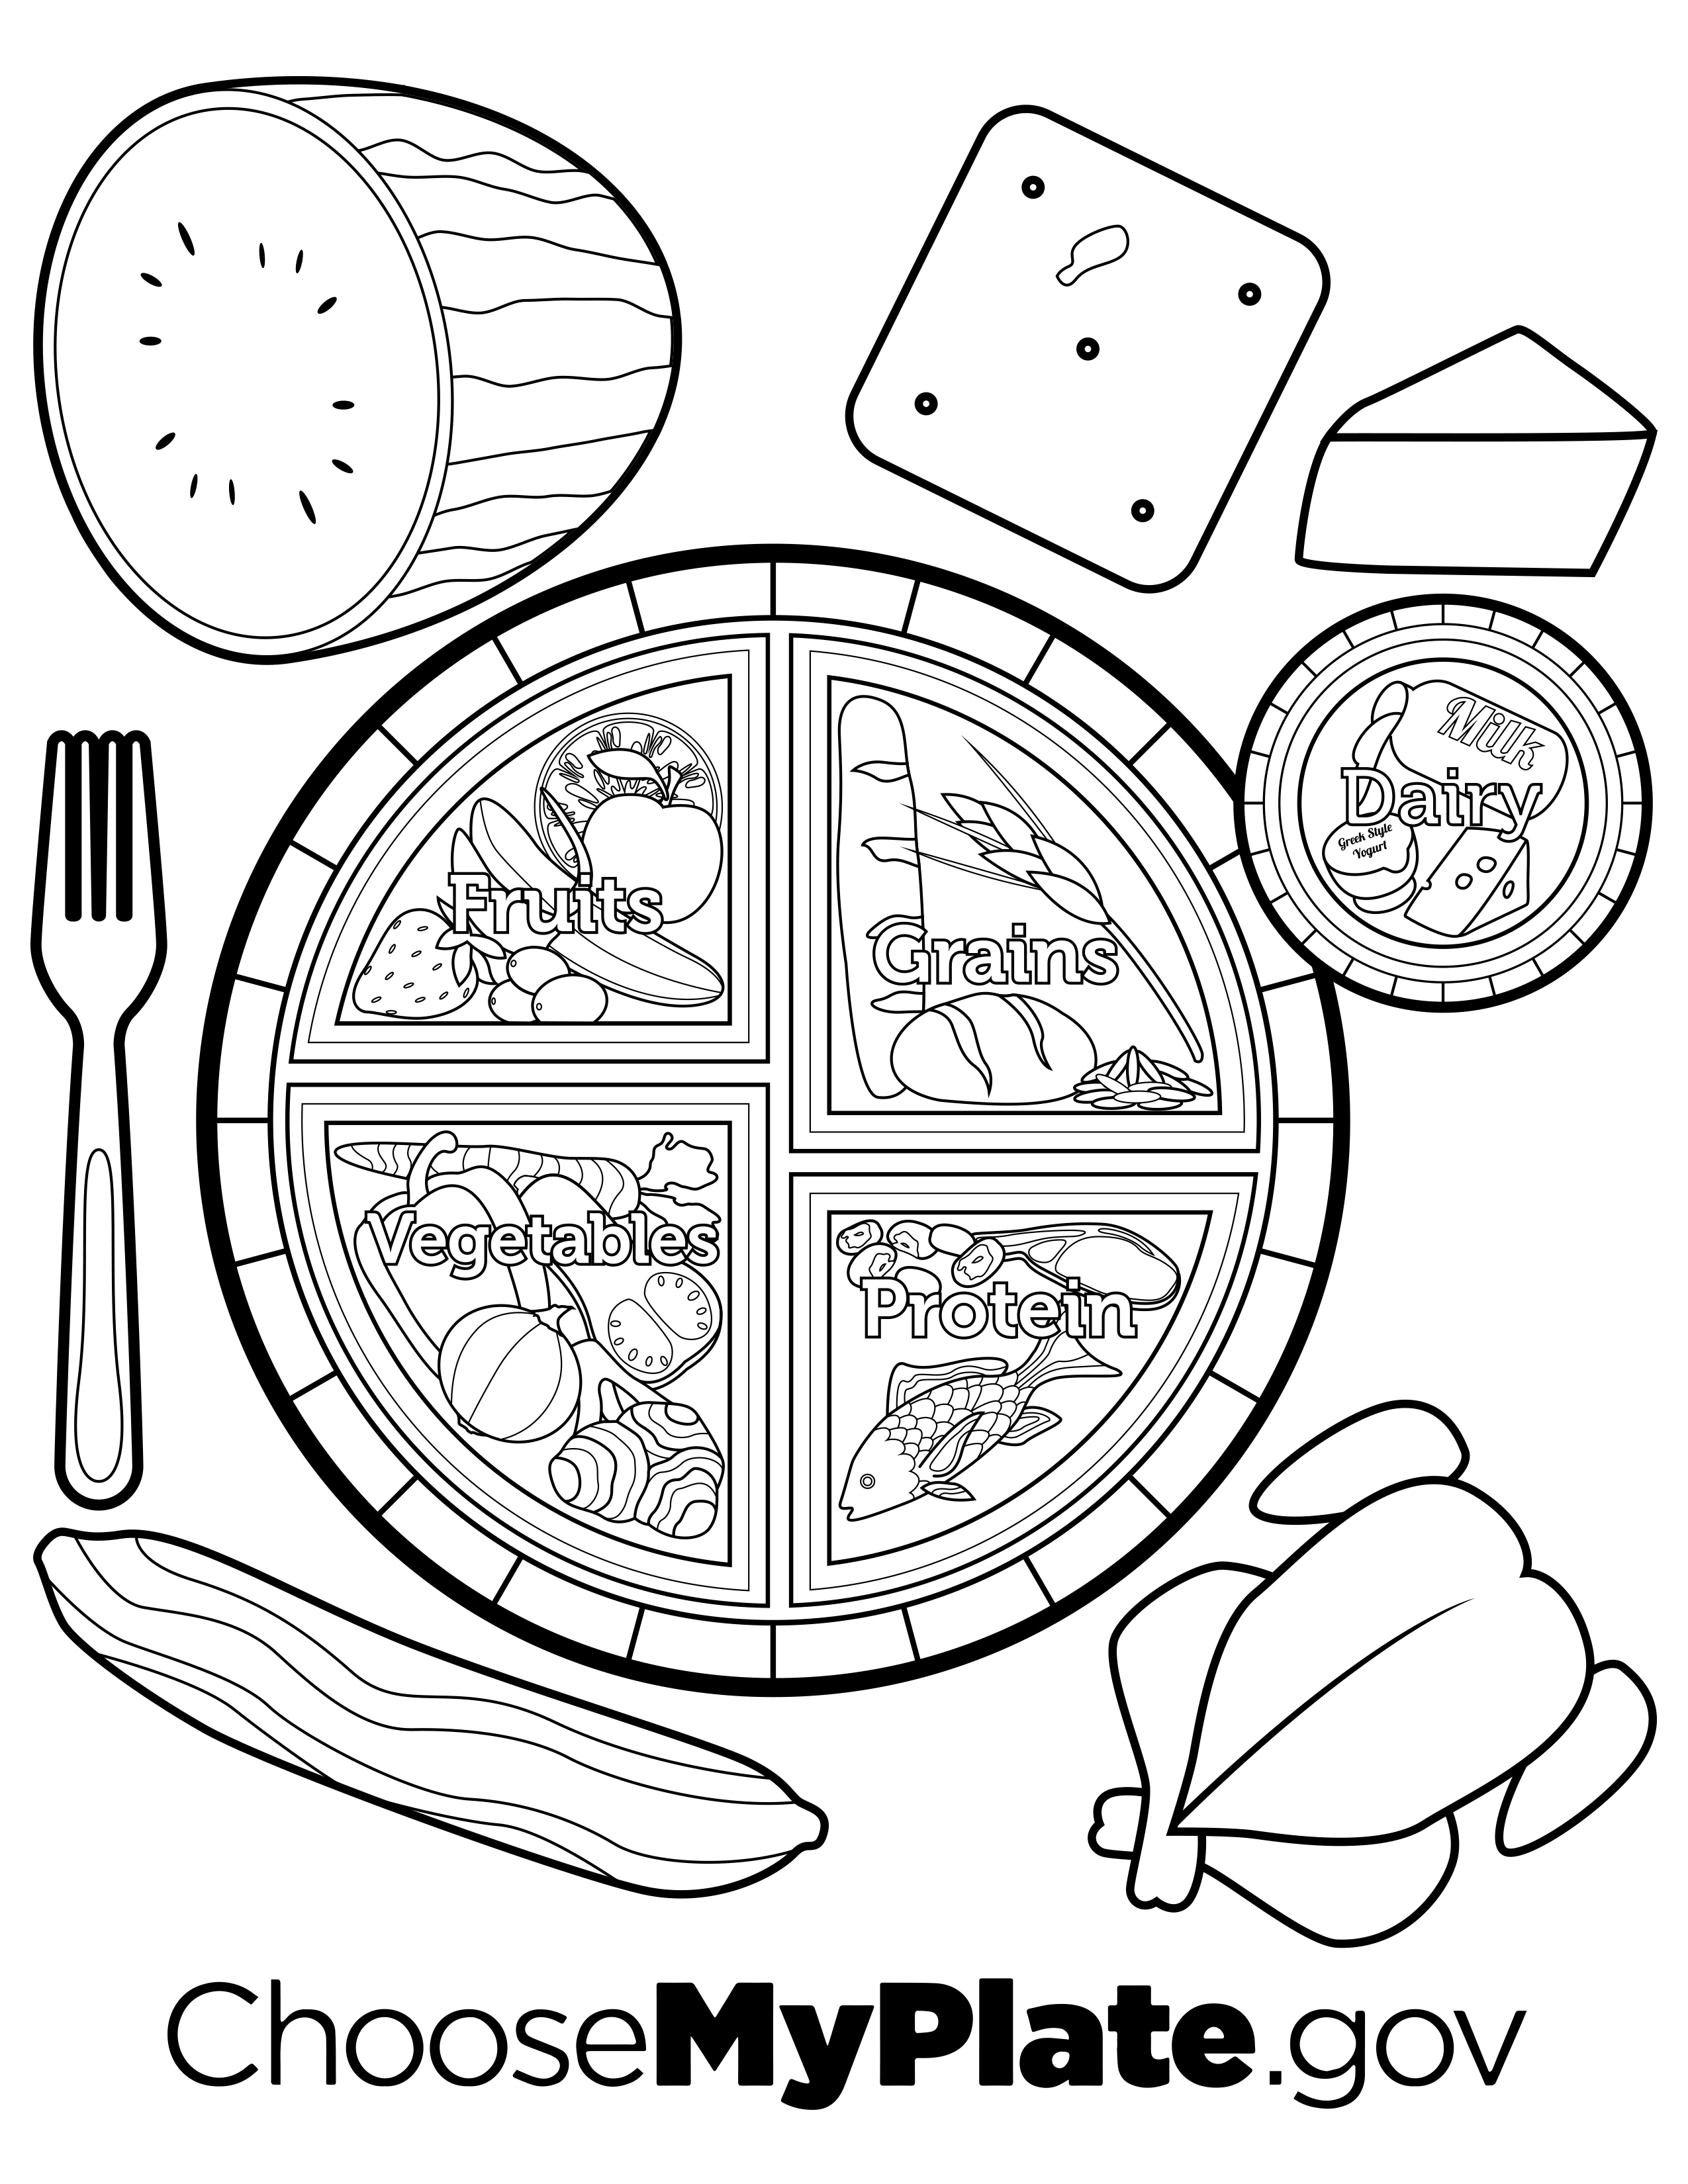 Myplate Coloring Page - My Plate Coloring Page